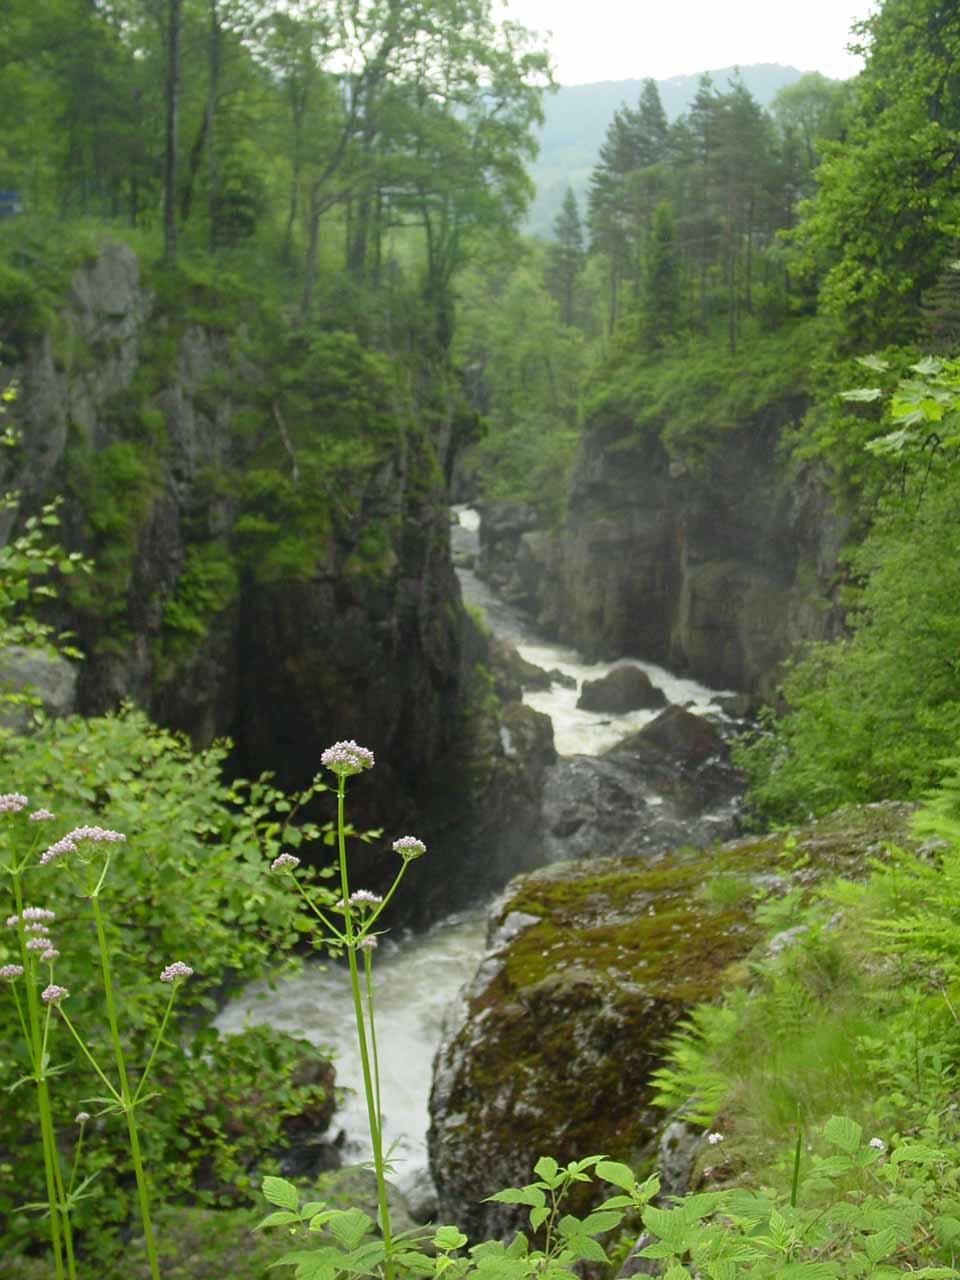 Looking downstream past Kvasfossen and some flowers from the near side of the bridge